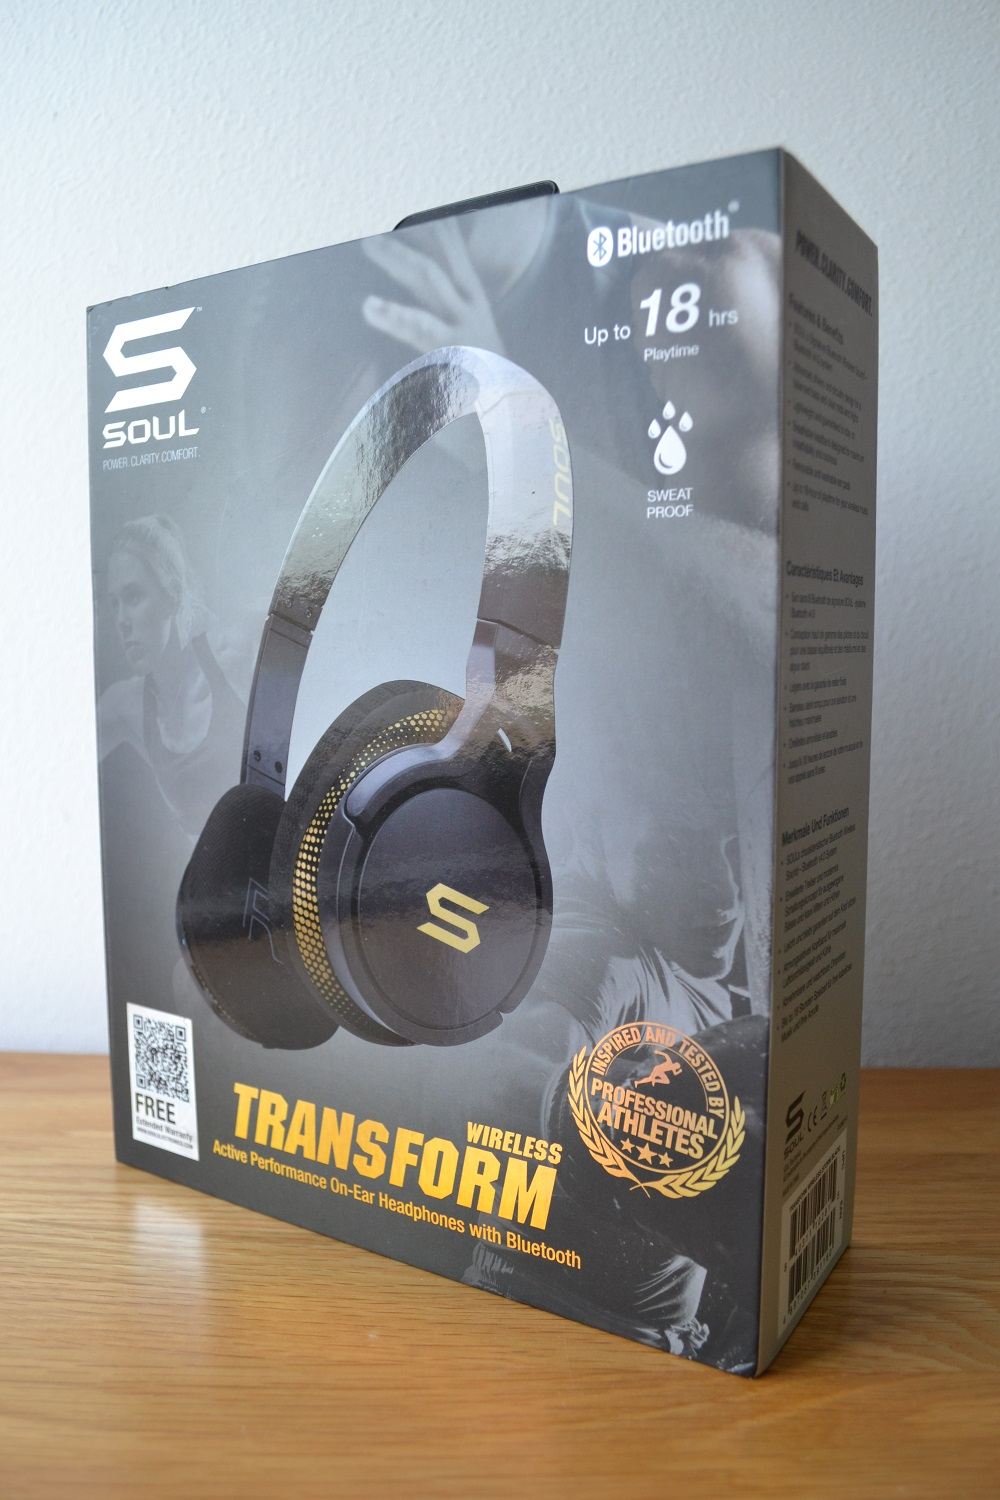 Soul Transform Wireless Bluetooth Headphone Review